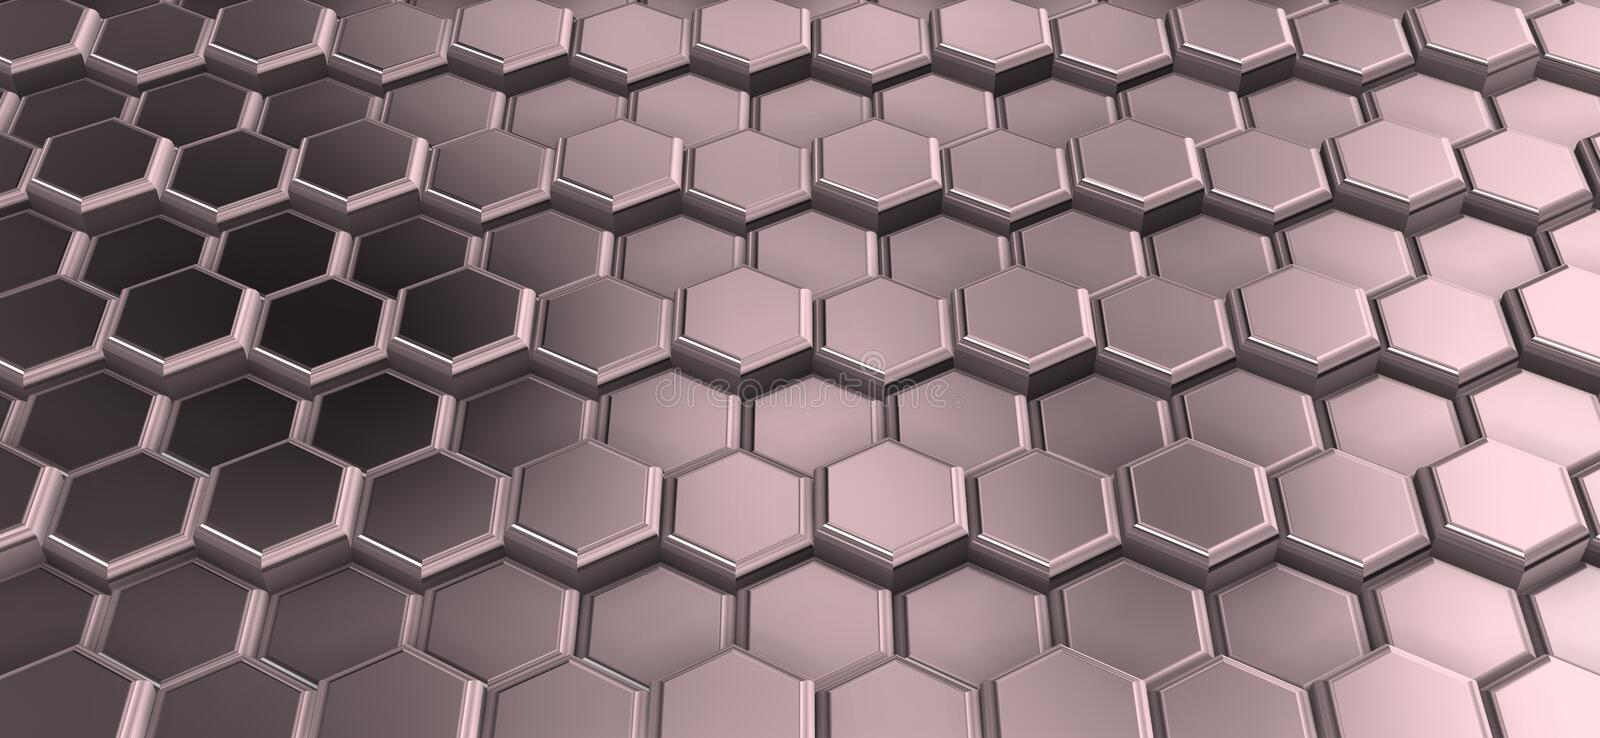 Perspactive of metal hexagons joined in rows. stock images